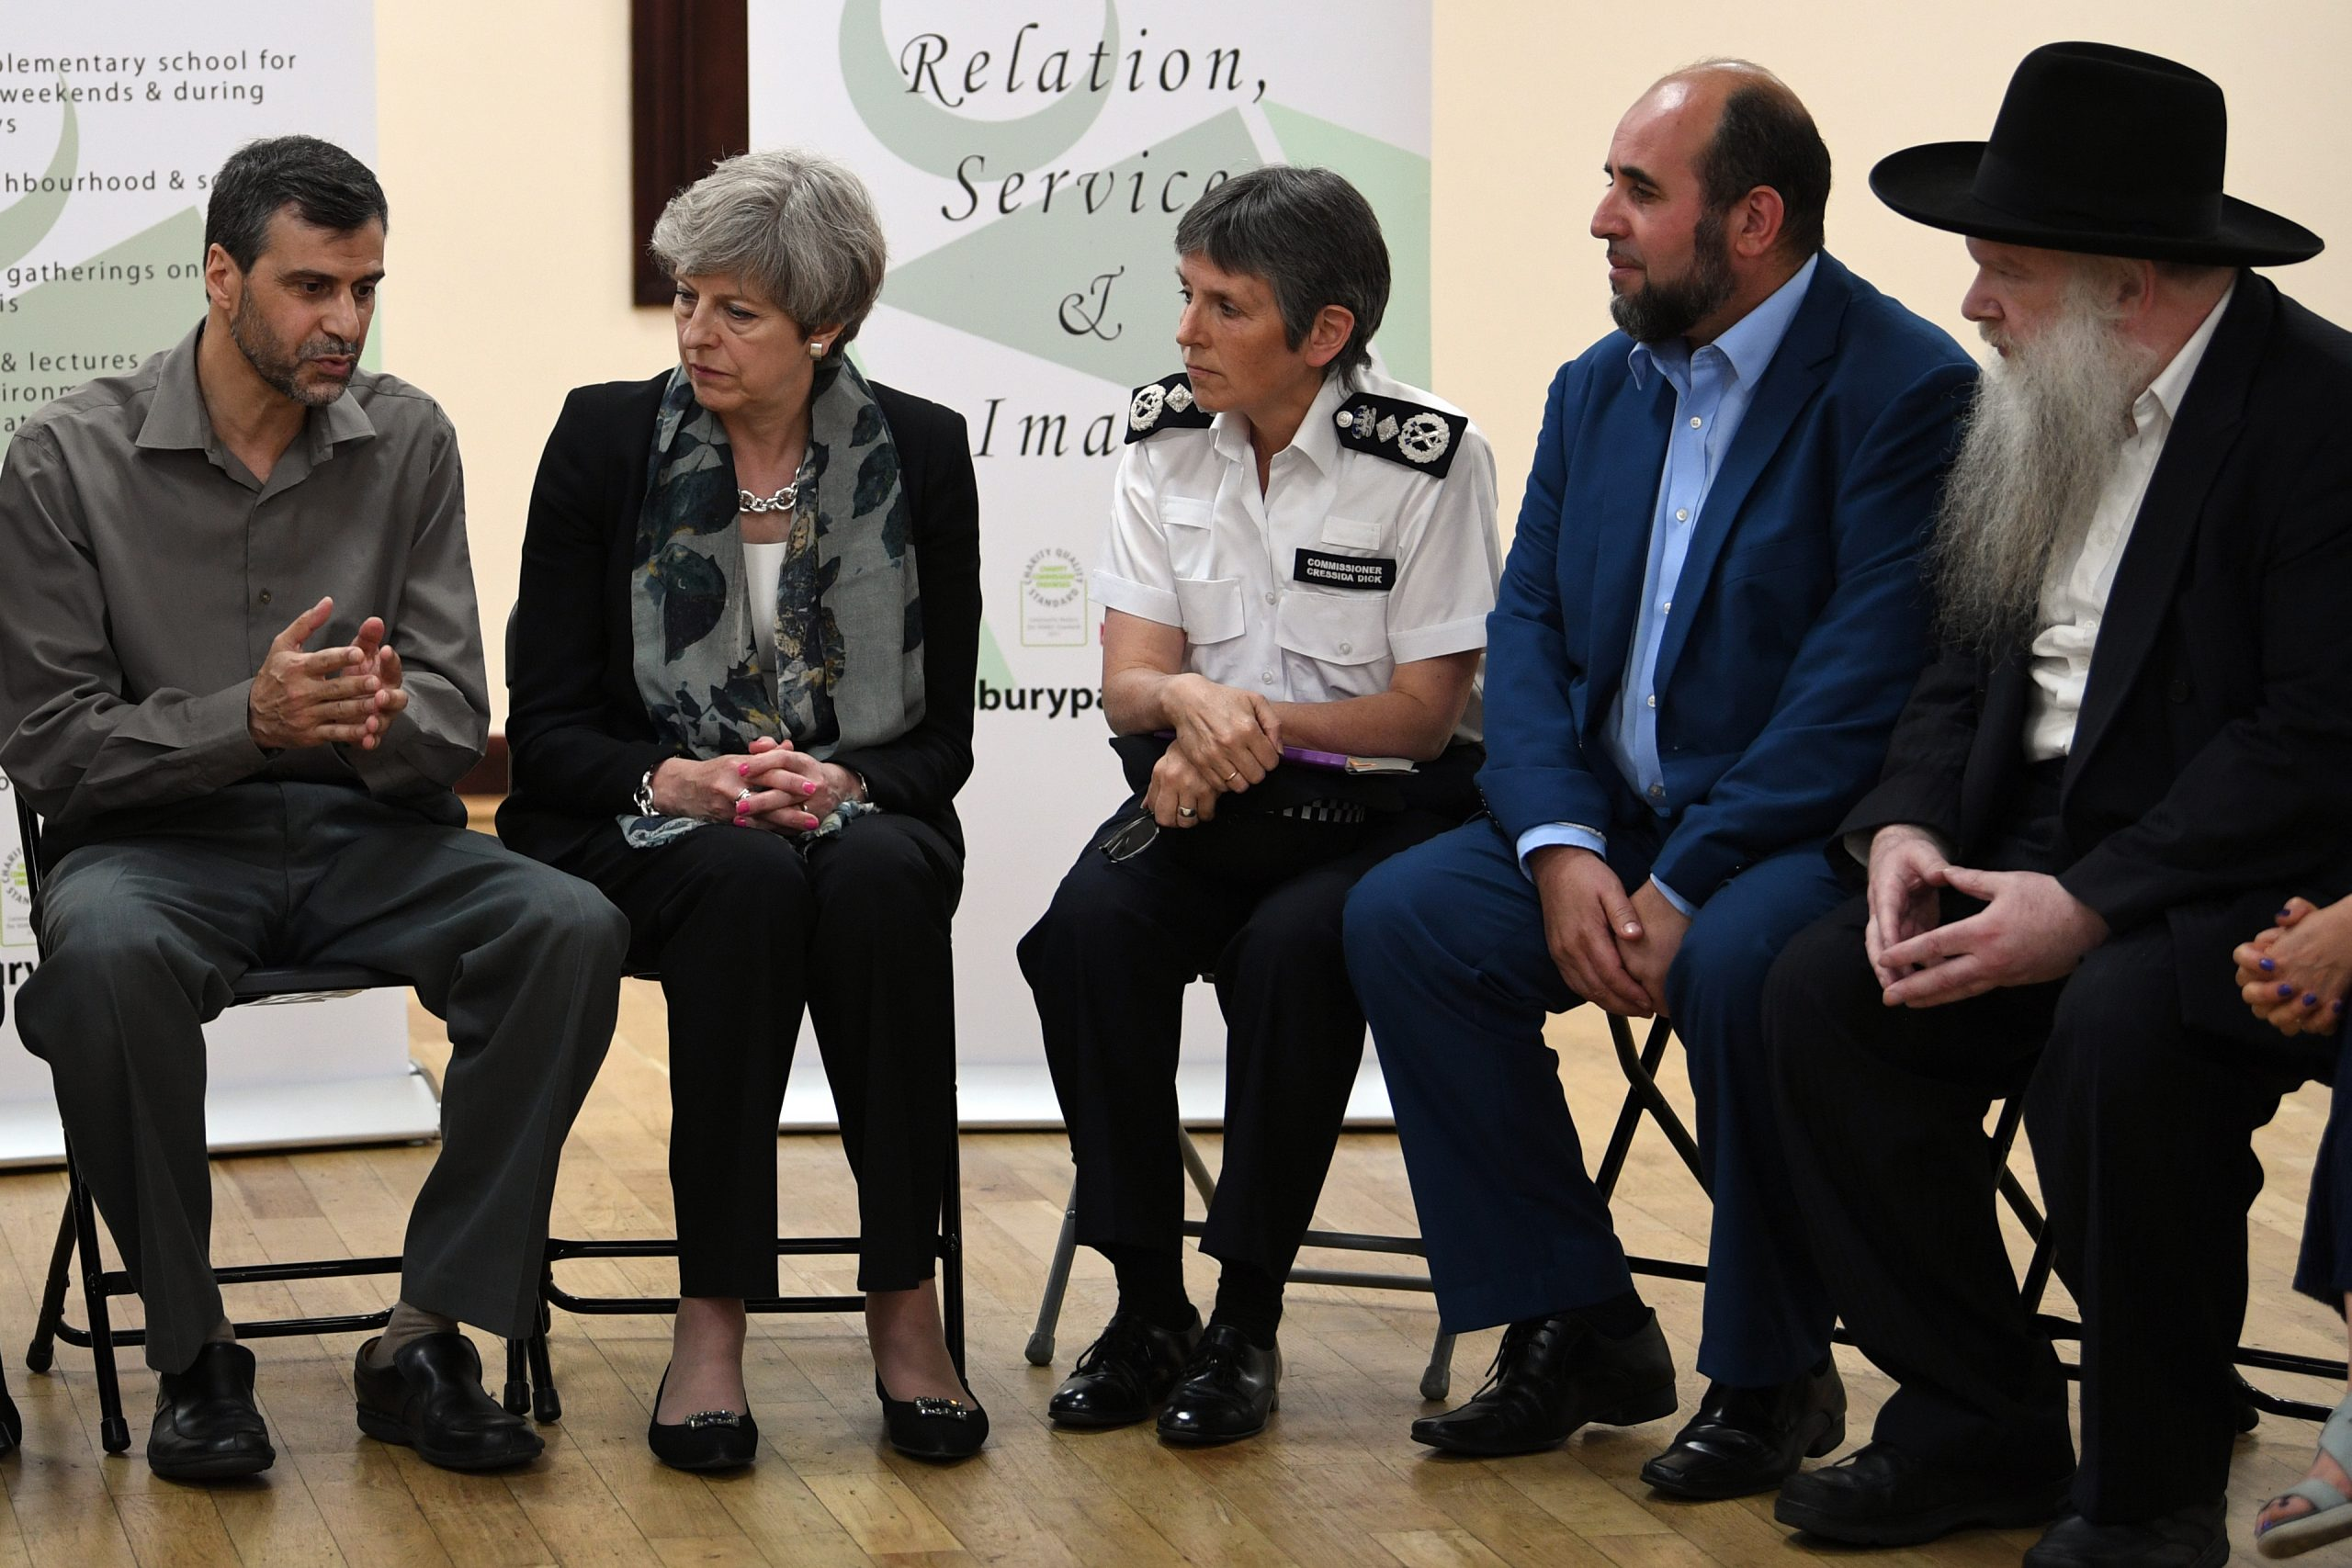 LONDON, ENGLAND - JUNE 19: Prime Minister Theresa May and Metropolitan Police Commissioner Cressida Dick talk to faith leaders at Finsbury Park Mosque.  Worshippers were struck by a hired van as they were leaving the mosque in North London after Ramadan prayers. (Stefan Rousseau/WPA Pool/Getty Images)